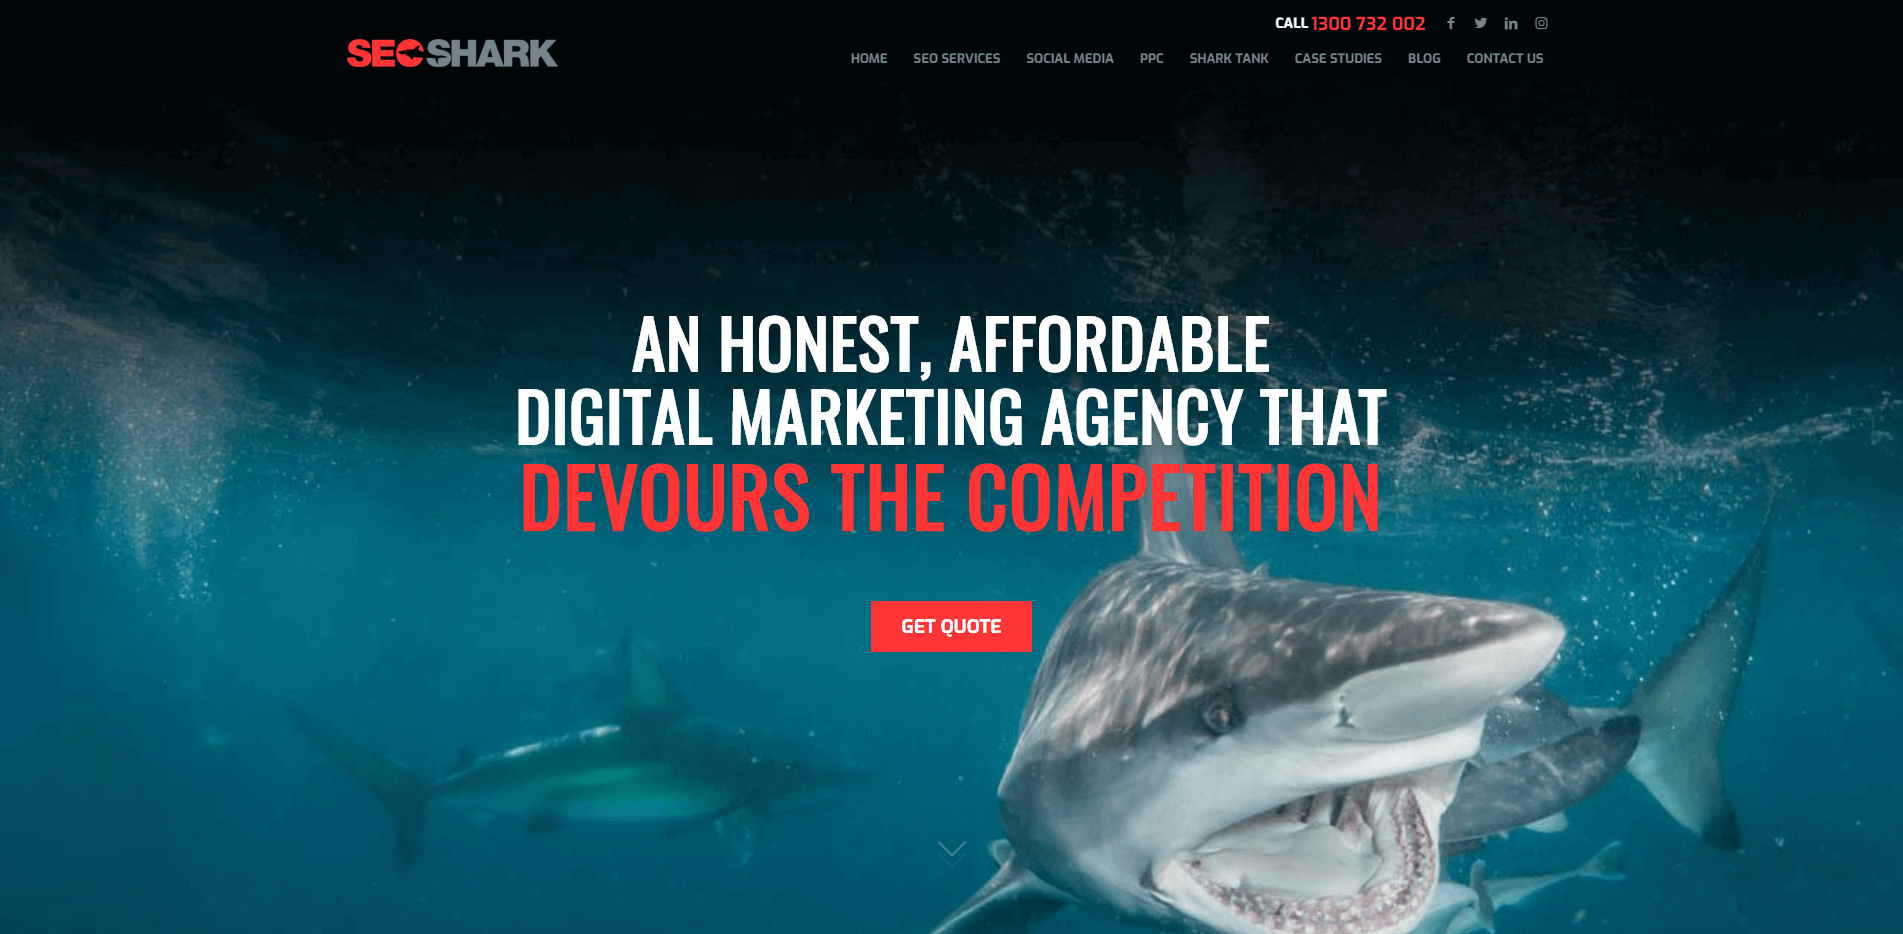 Home page of SEO shark – a Digital Marketing Agency